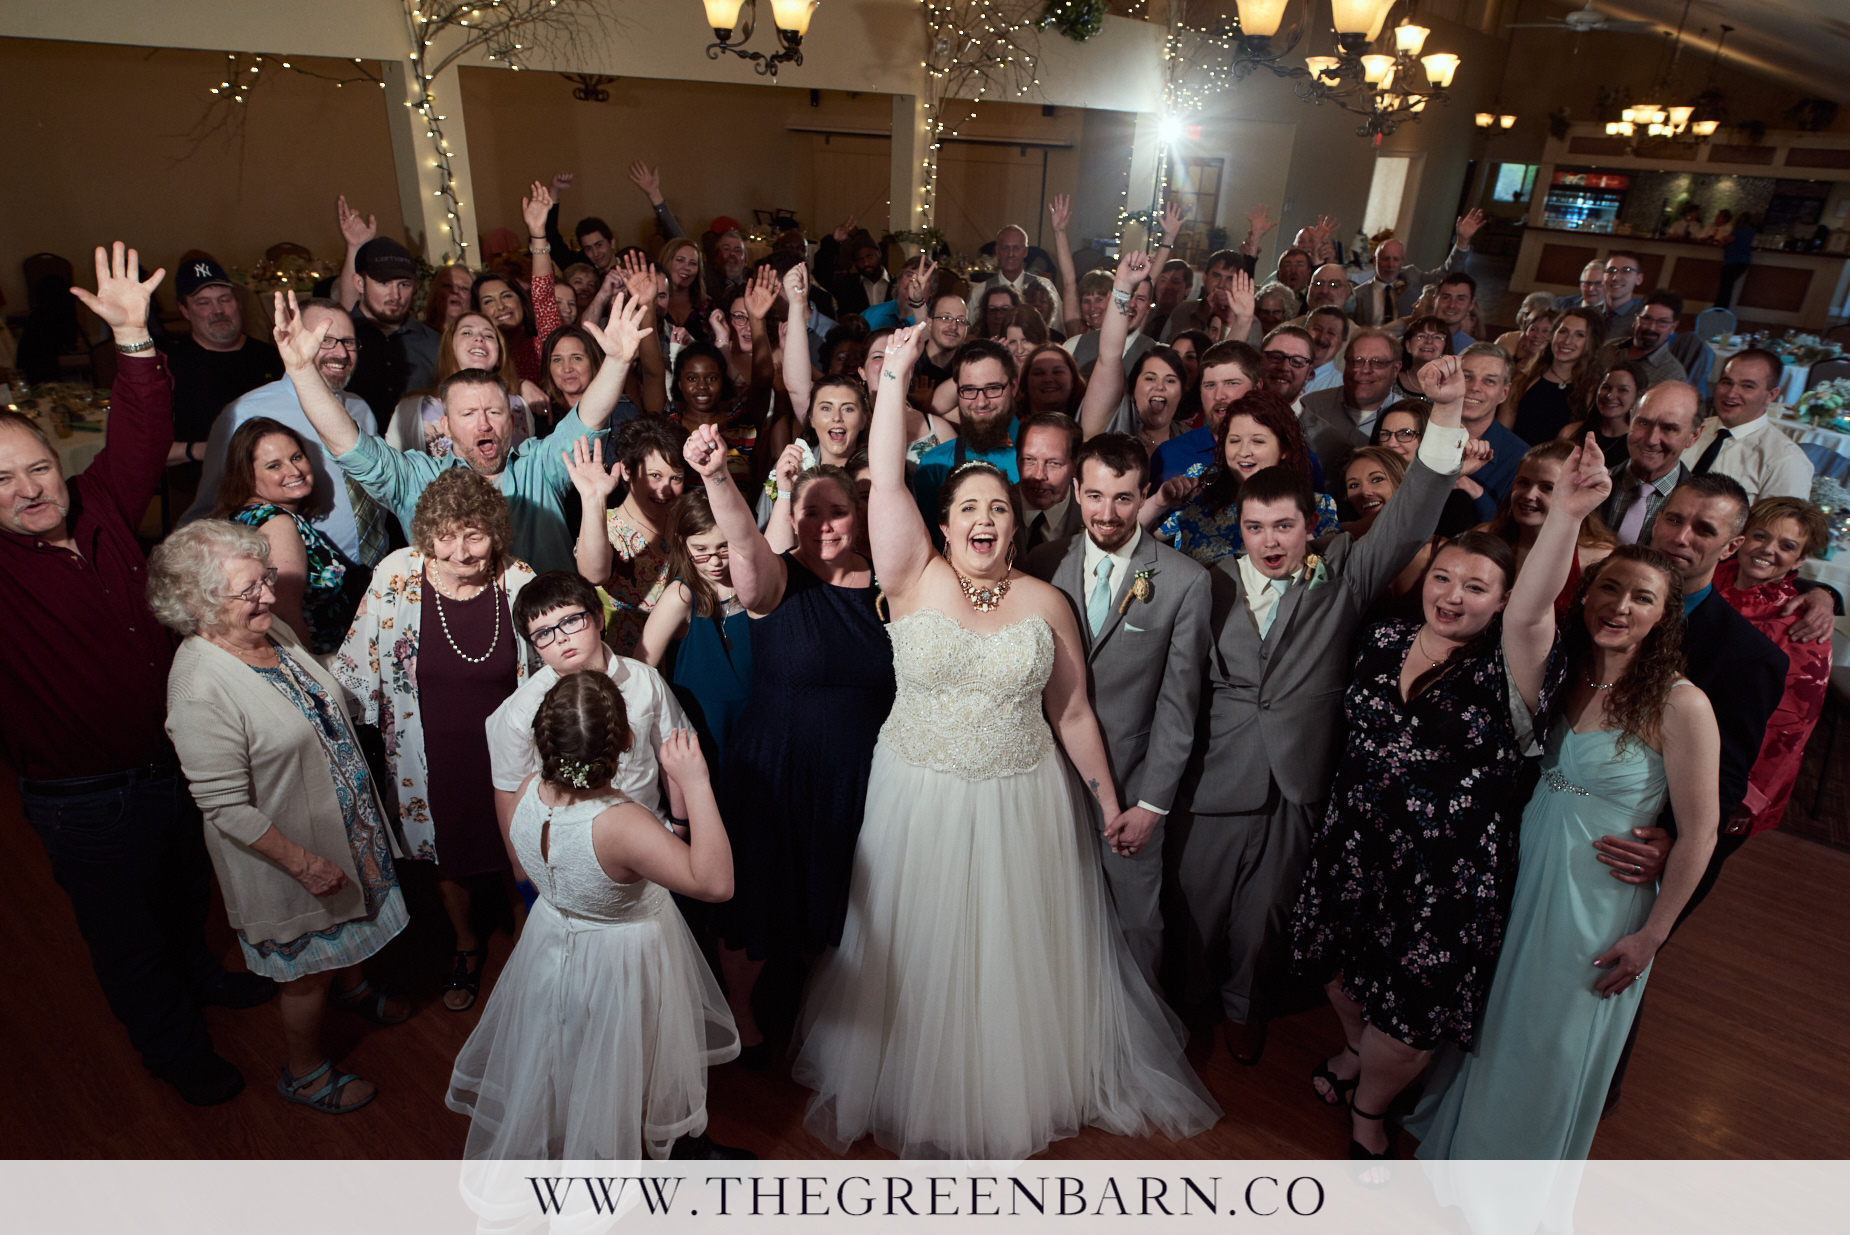 All Guests Group Photo on the Dance Floor at Catamount Country Club a Wedding Venue Near Burlington Vermont